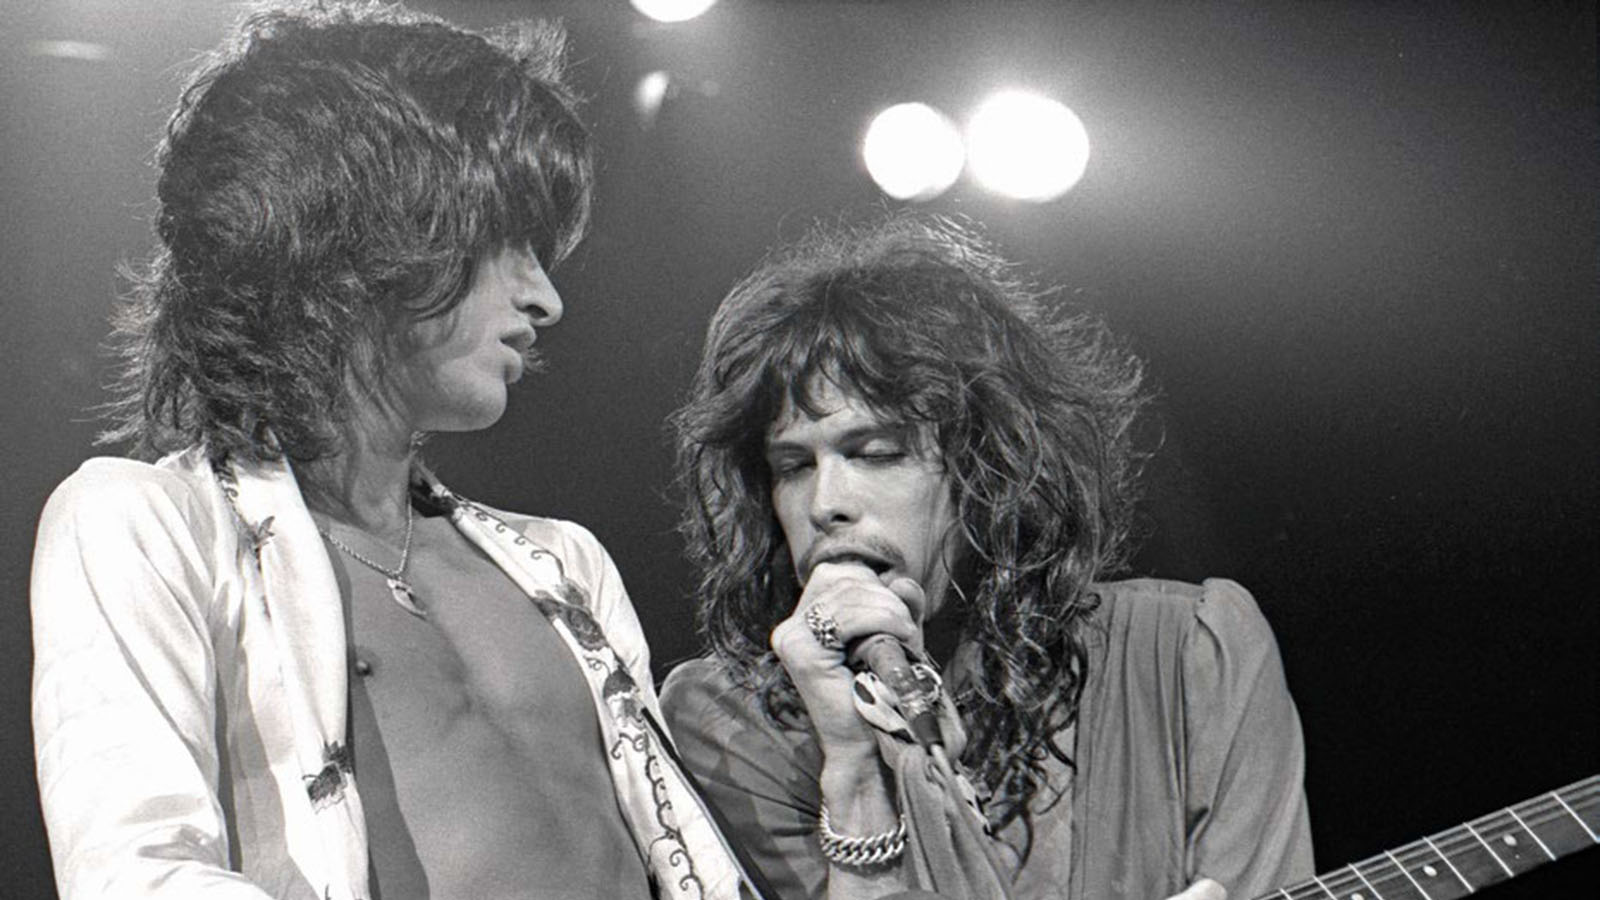 The Secrets Behind Joe Perry S Guitar Tone On Aerosmith S Walk This Way Guitar World Joe perry's tips for staying young. the secrets behind joe perry s guitar tone on aerosmith s walk this way guitar world